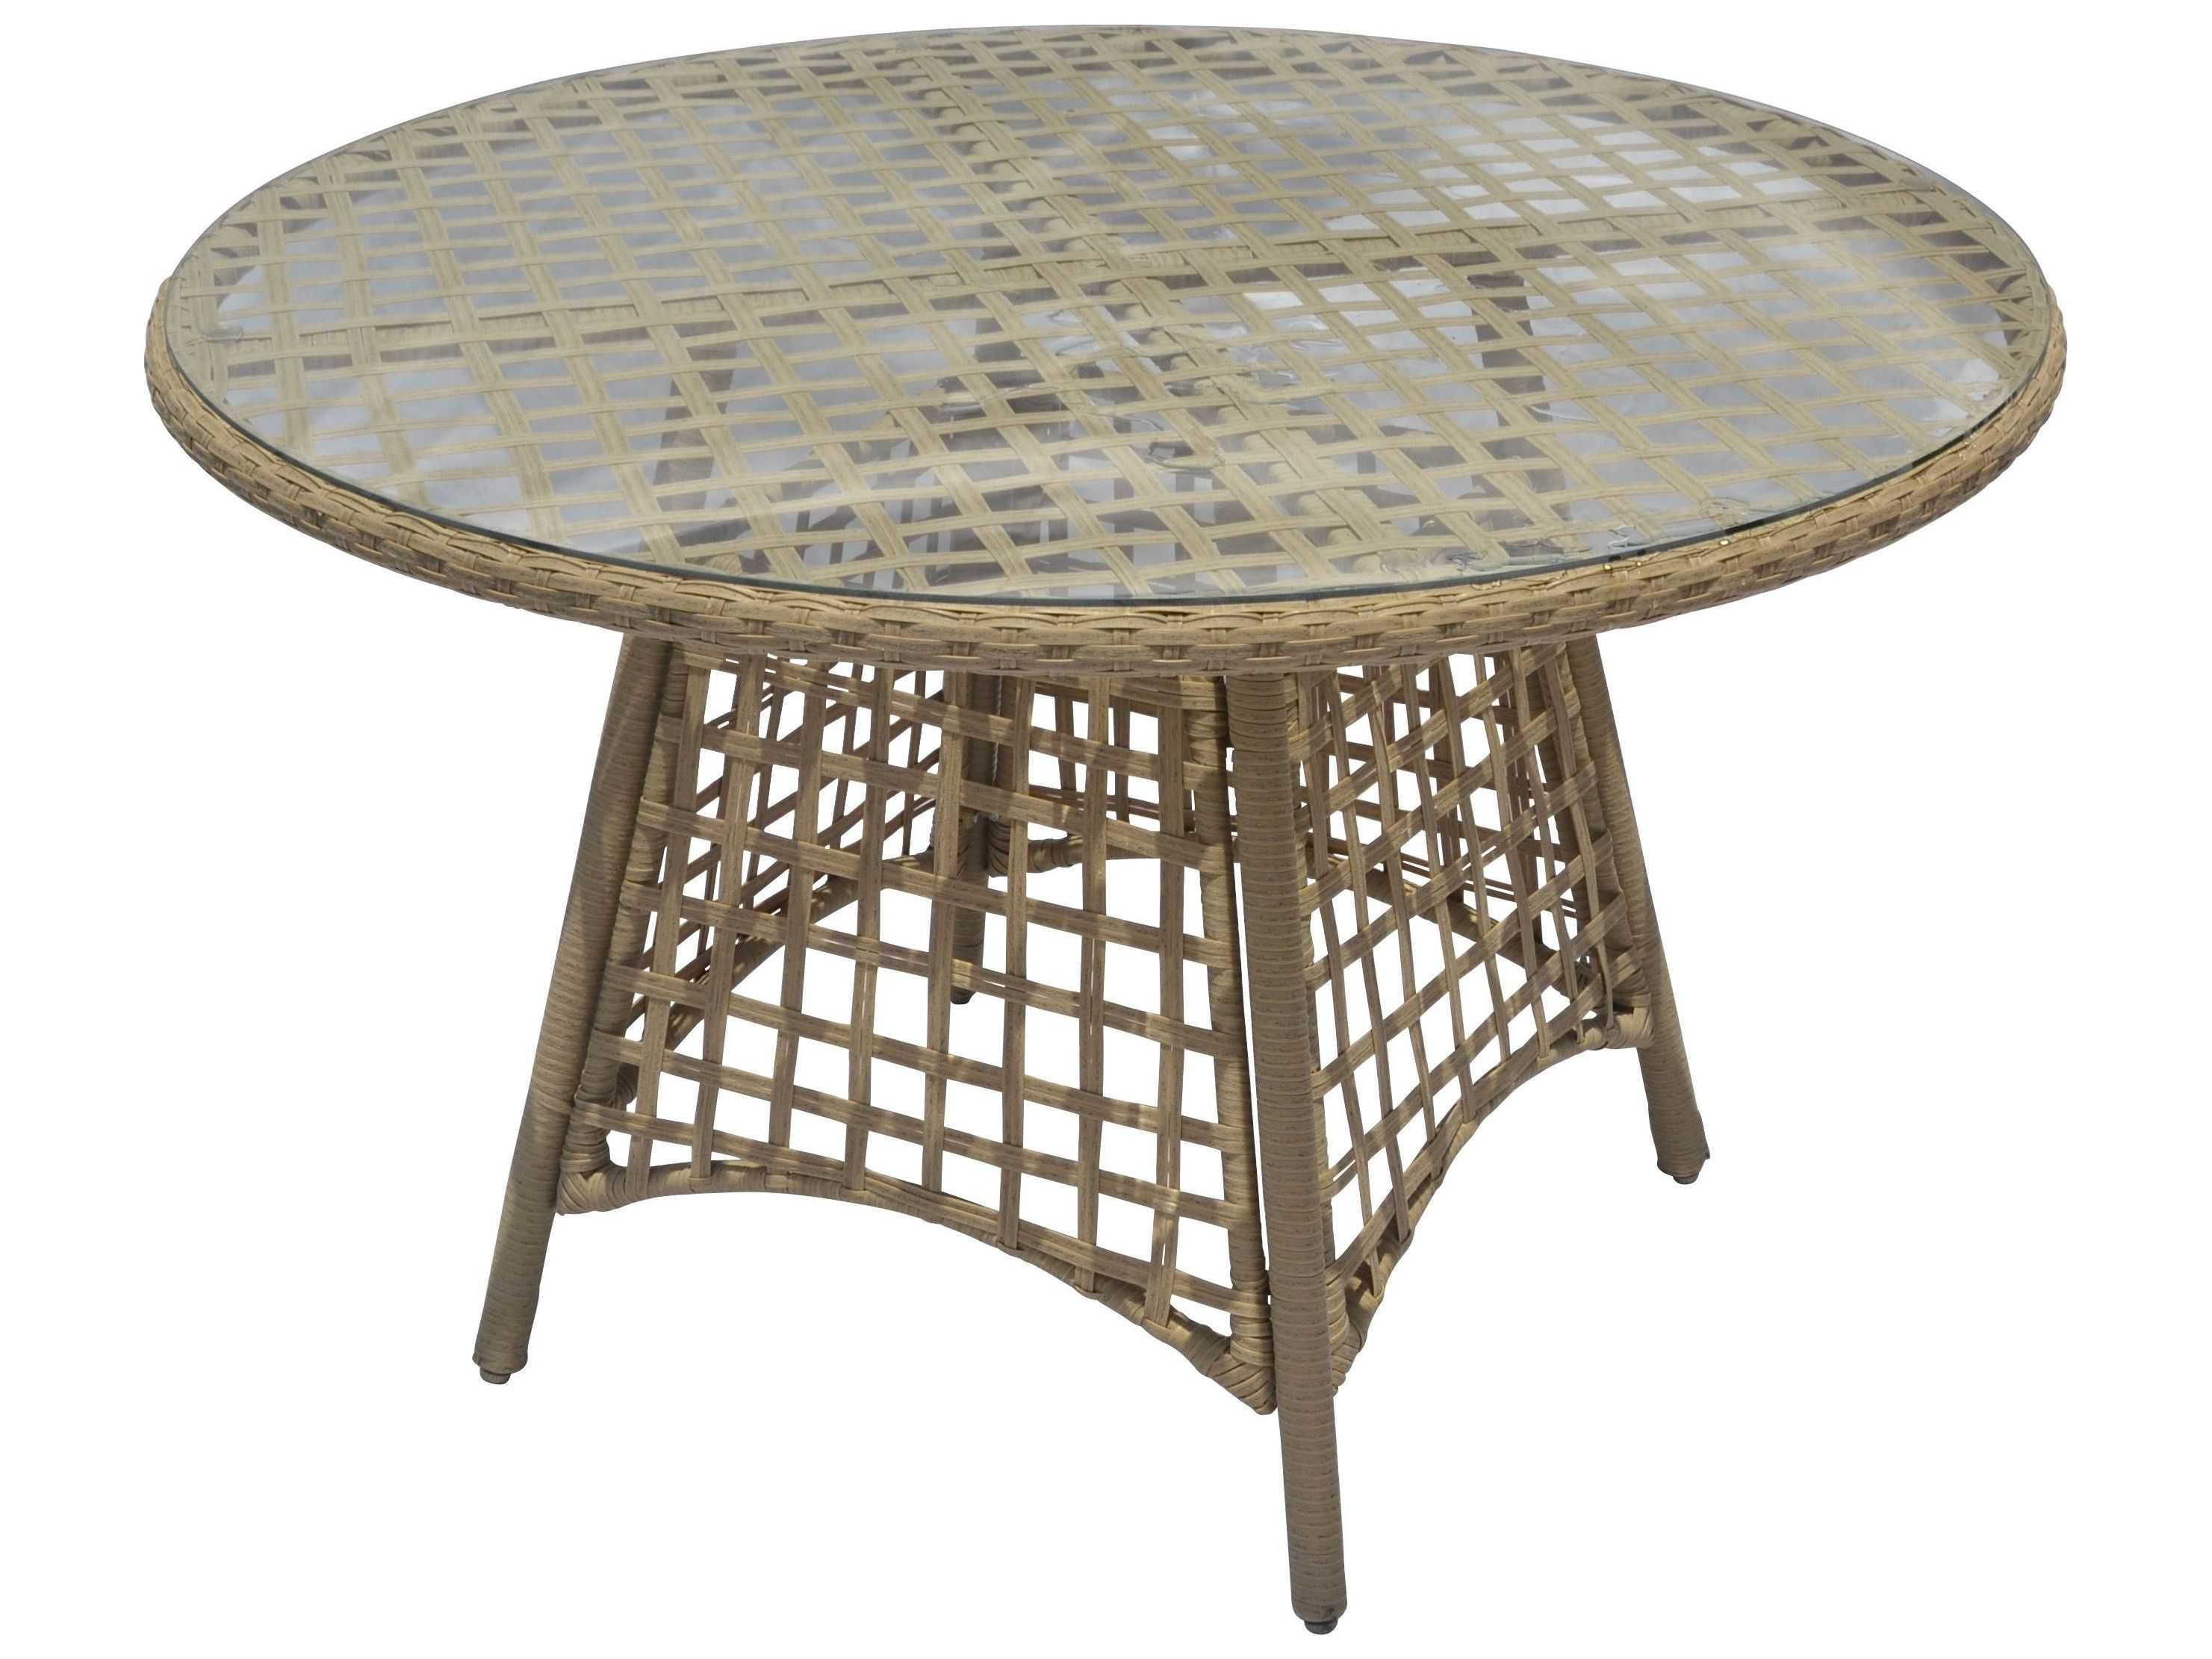 Suncoast Sedona Wicker 48 Round Dining Table